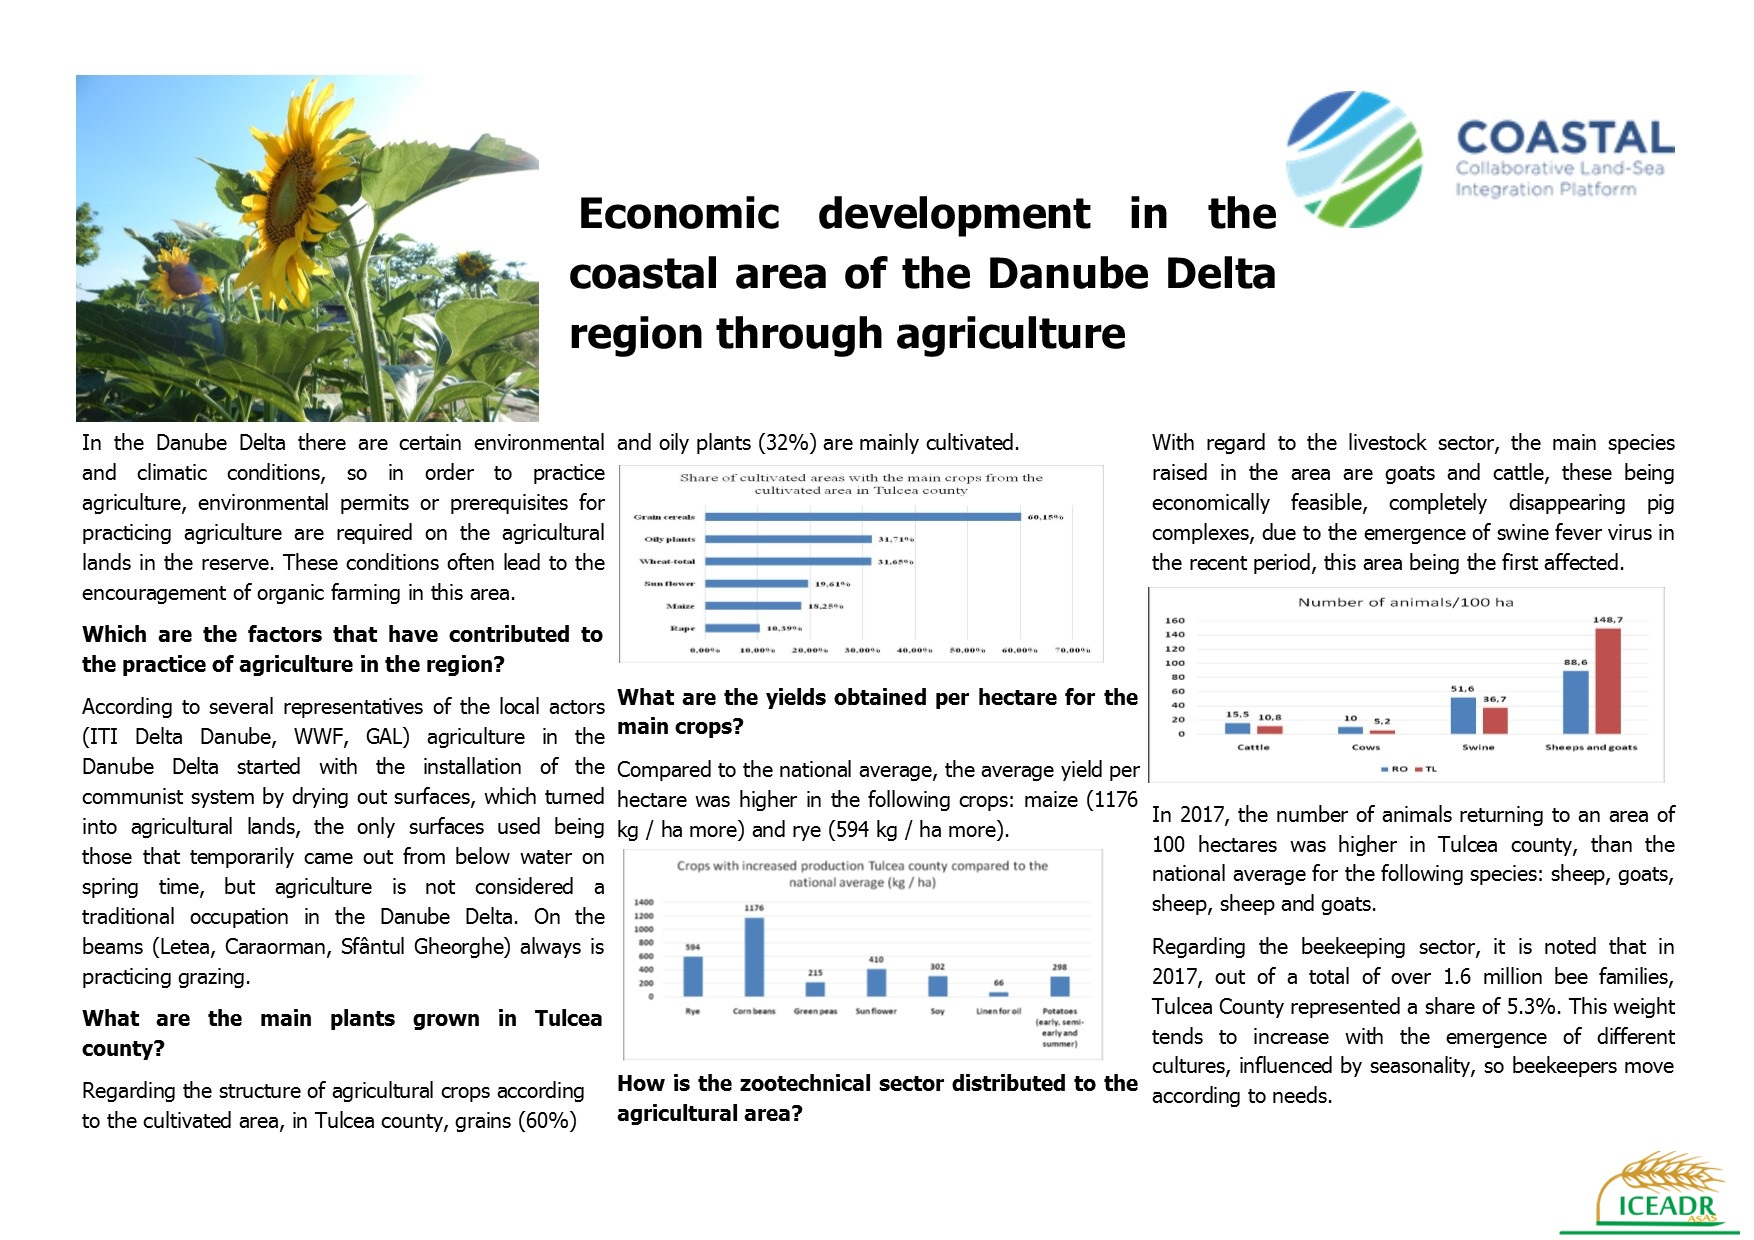 Economic development in the coastal area of the Danube Delta region through agriculture